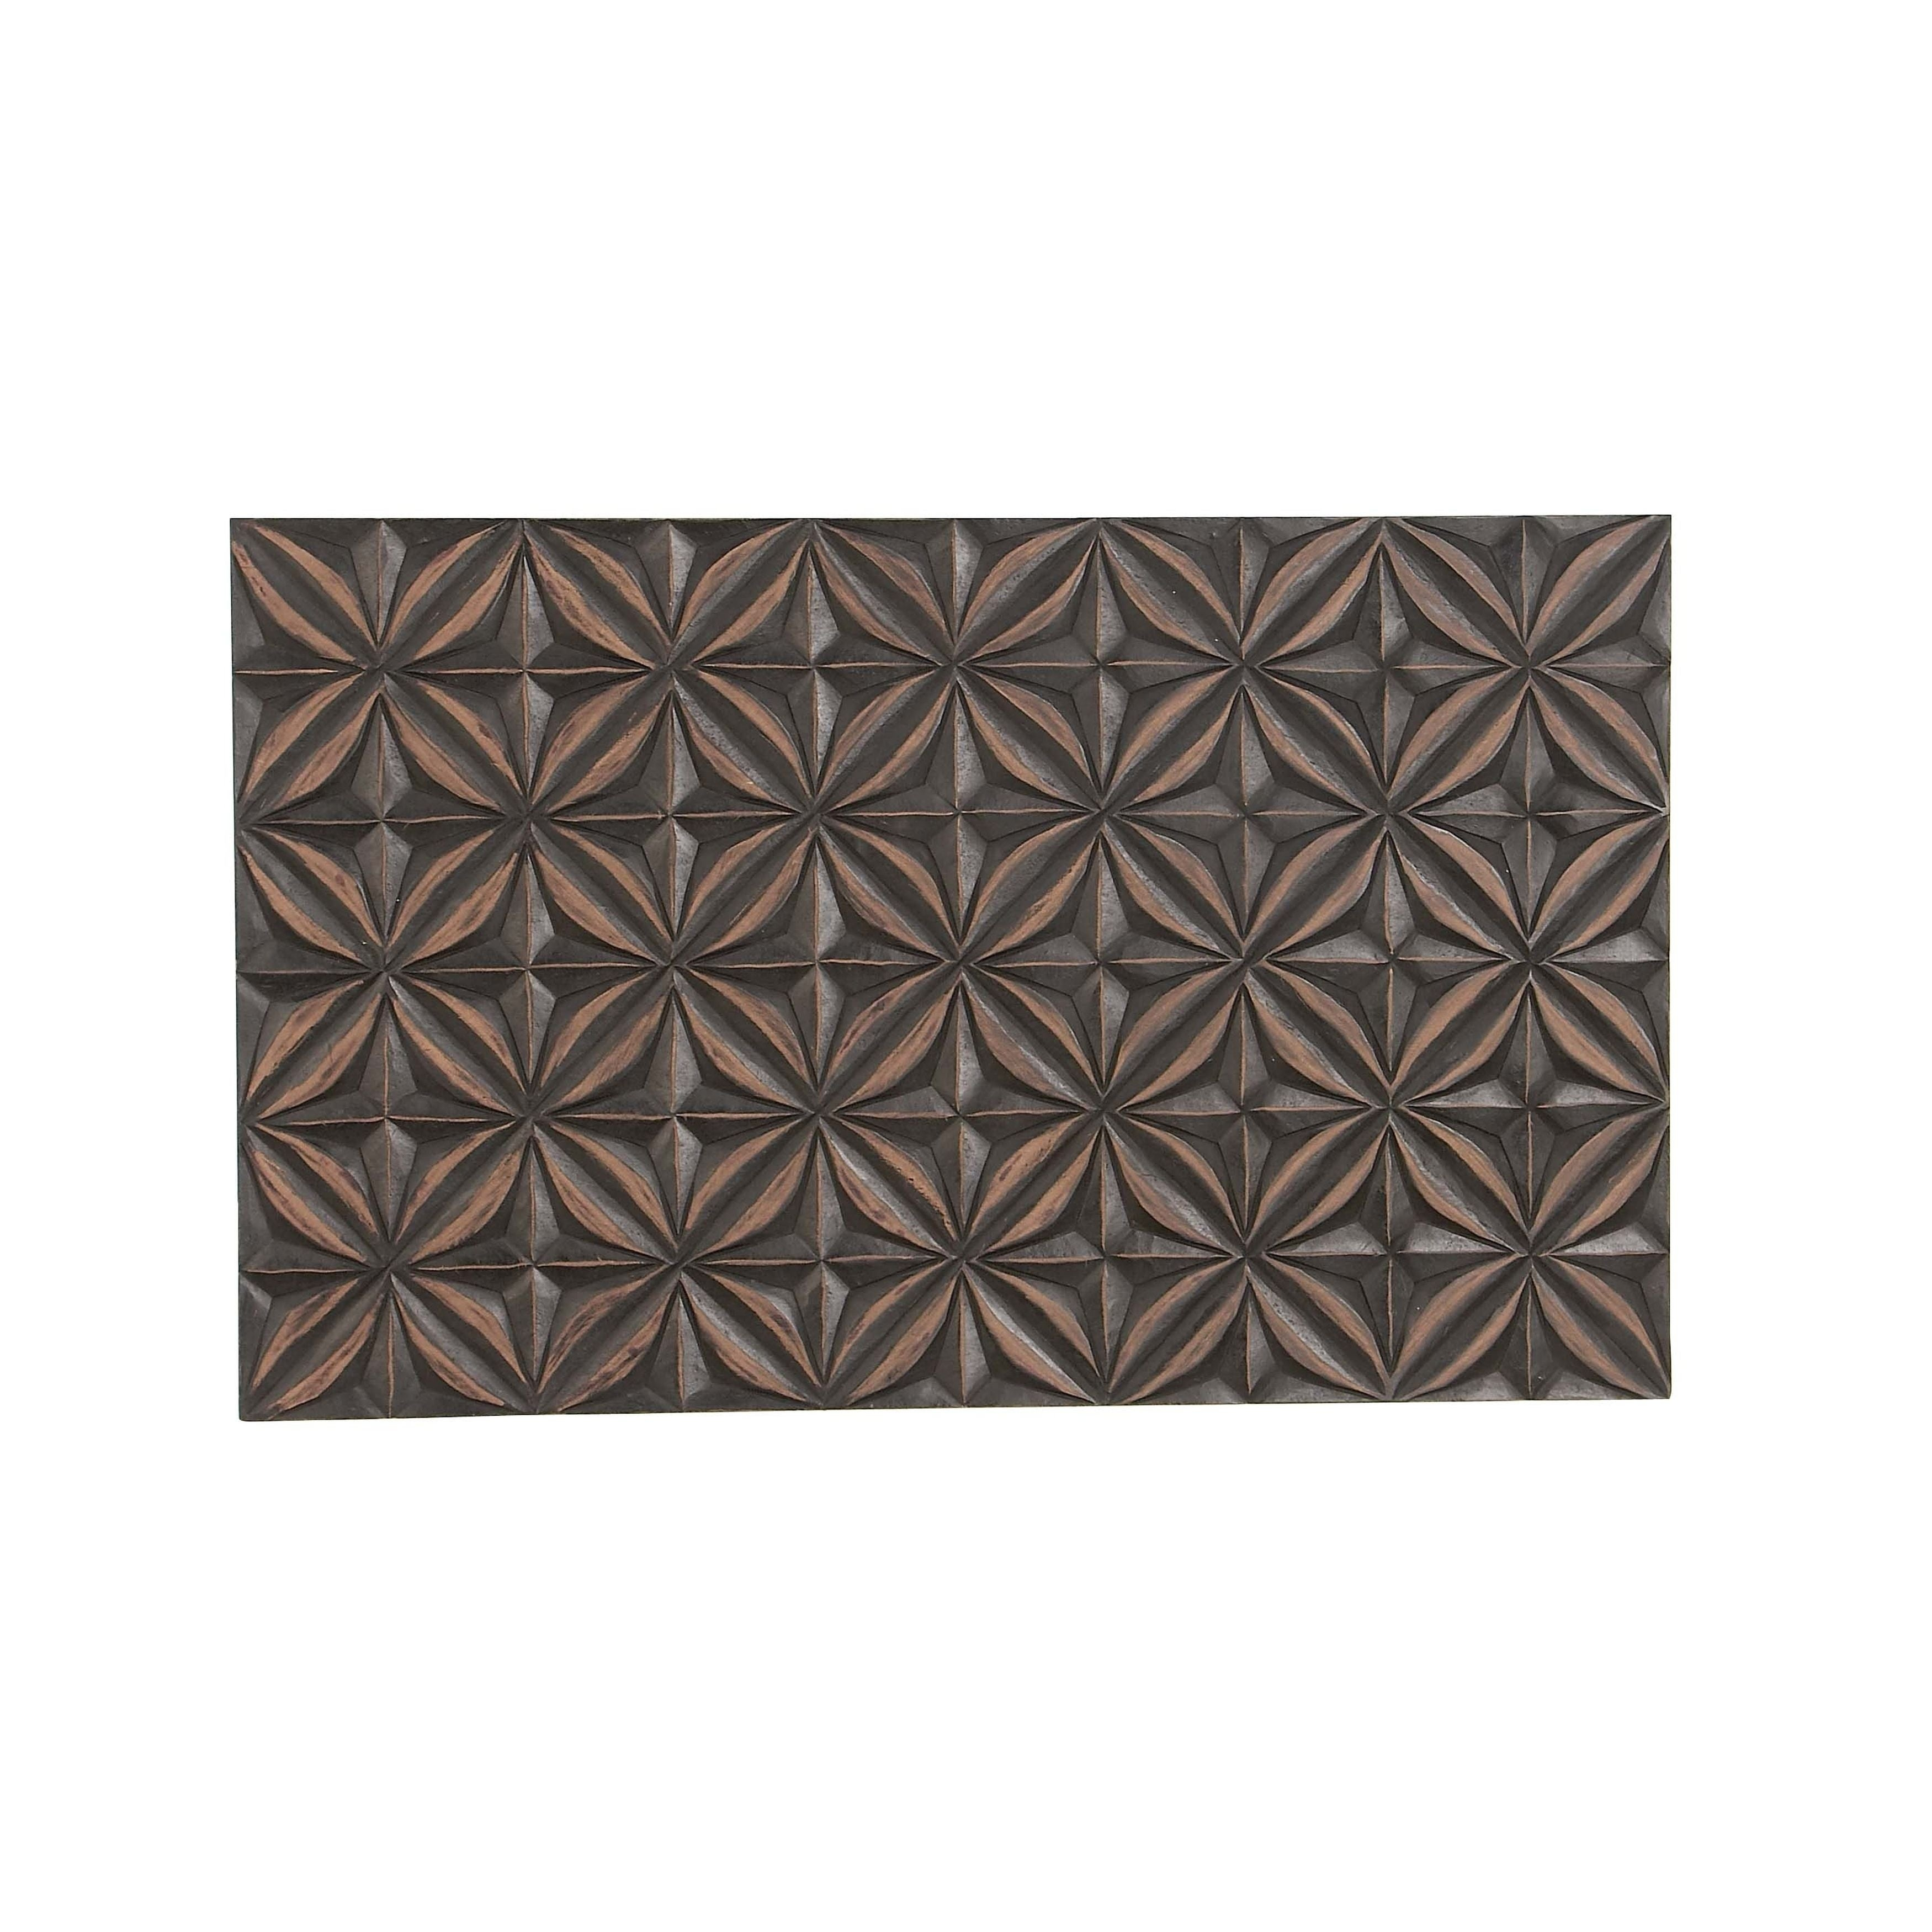 Trendy Floral Patterned Over The Door Wall Decor Throughout Shop Modern Pine Wood Rectangular Floral Lattice Patterned Wall (Gallery 4 of 20)